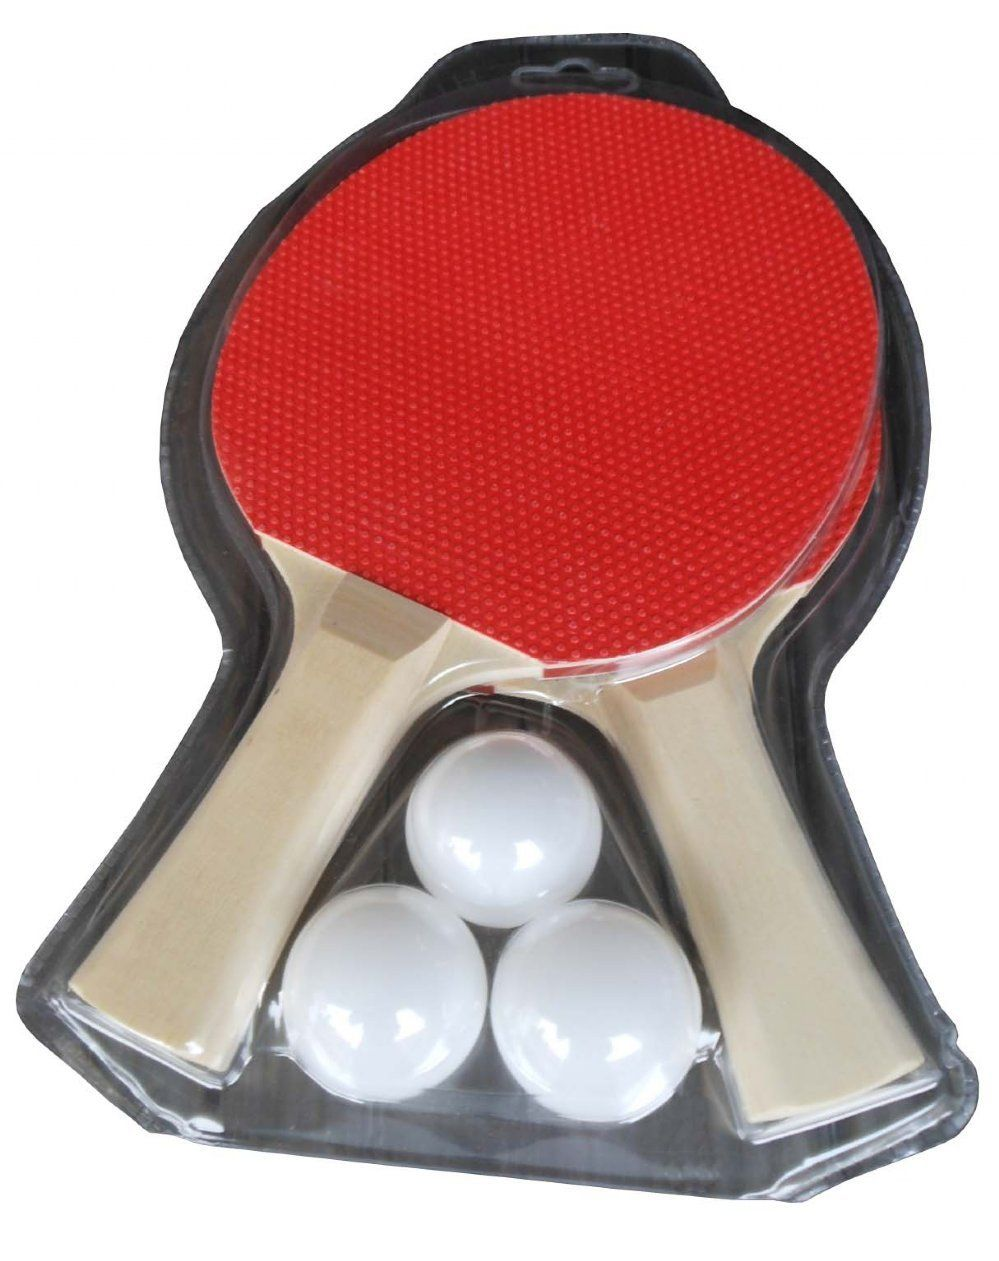 Table Tennis 2 Player Paddle Set With 3 Balls This 2 Player Table Tennis Set Includes Two Rackets Paddle Table Tennis Table Tennis Set Tennis Rules